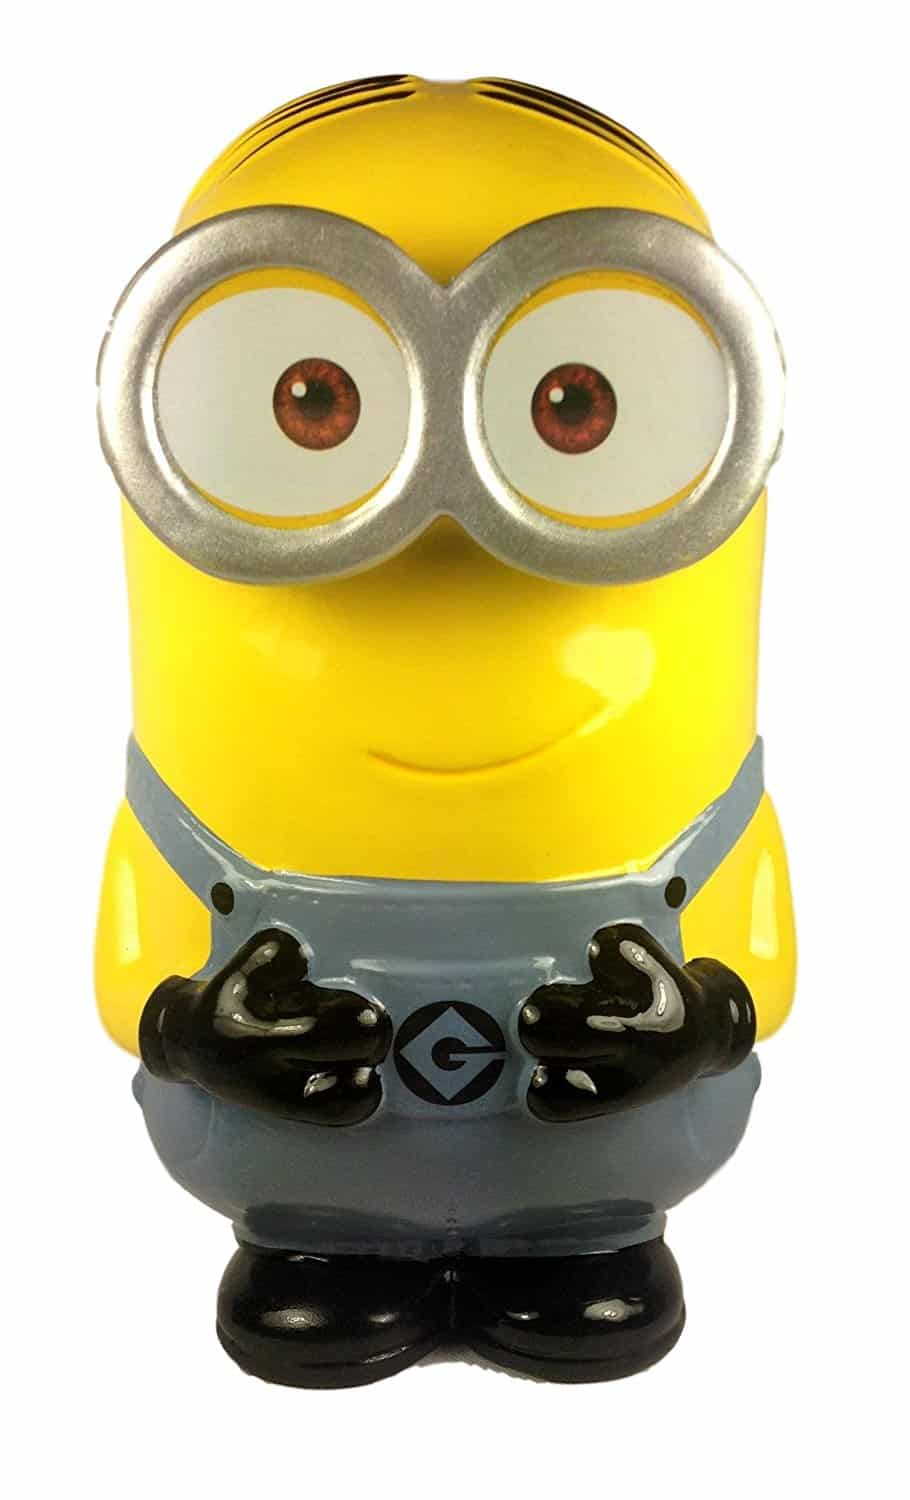 Despicable Me 2 Minion Ceramic Coin Bank